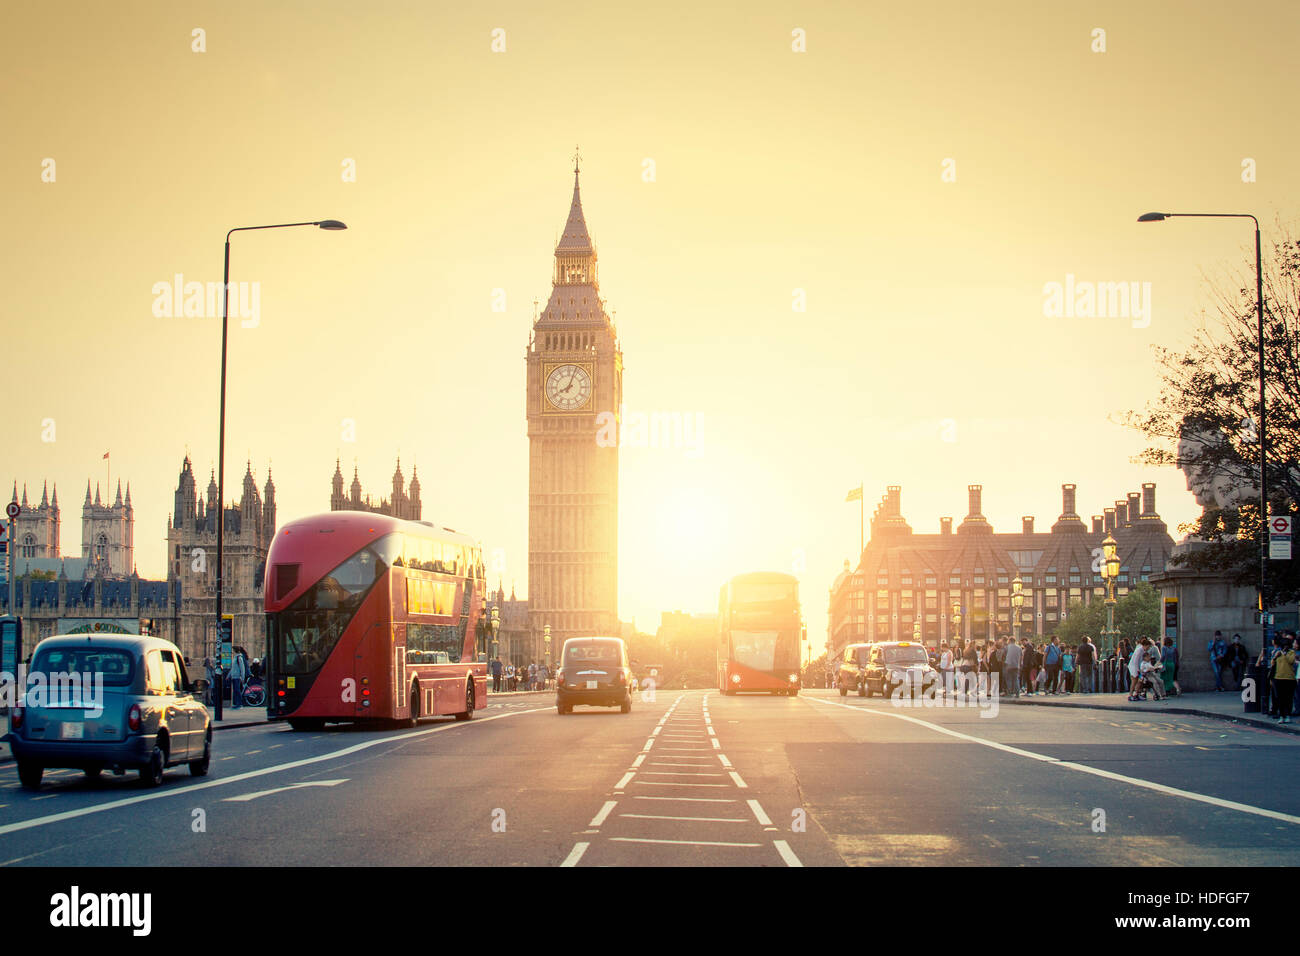 LONDON, UNITED KINGDOM,  Westminster palace and Big Ben and traffic on Westminster bridge in foreground - Stock Image